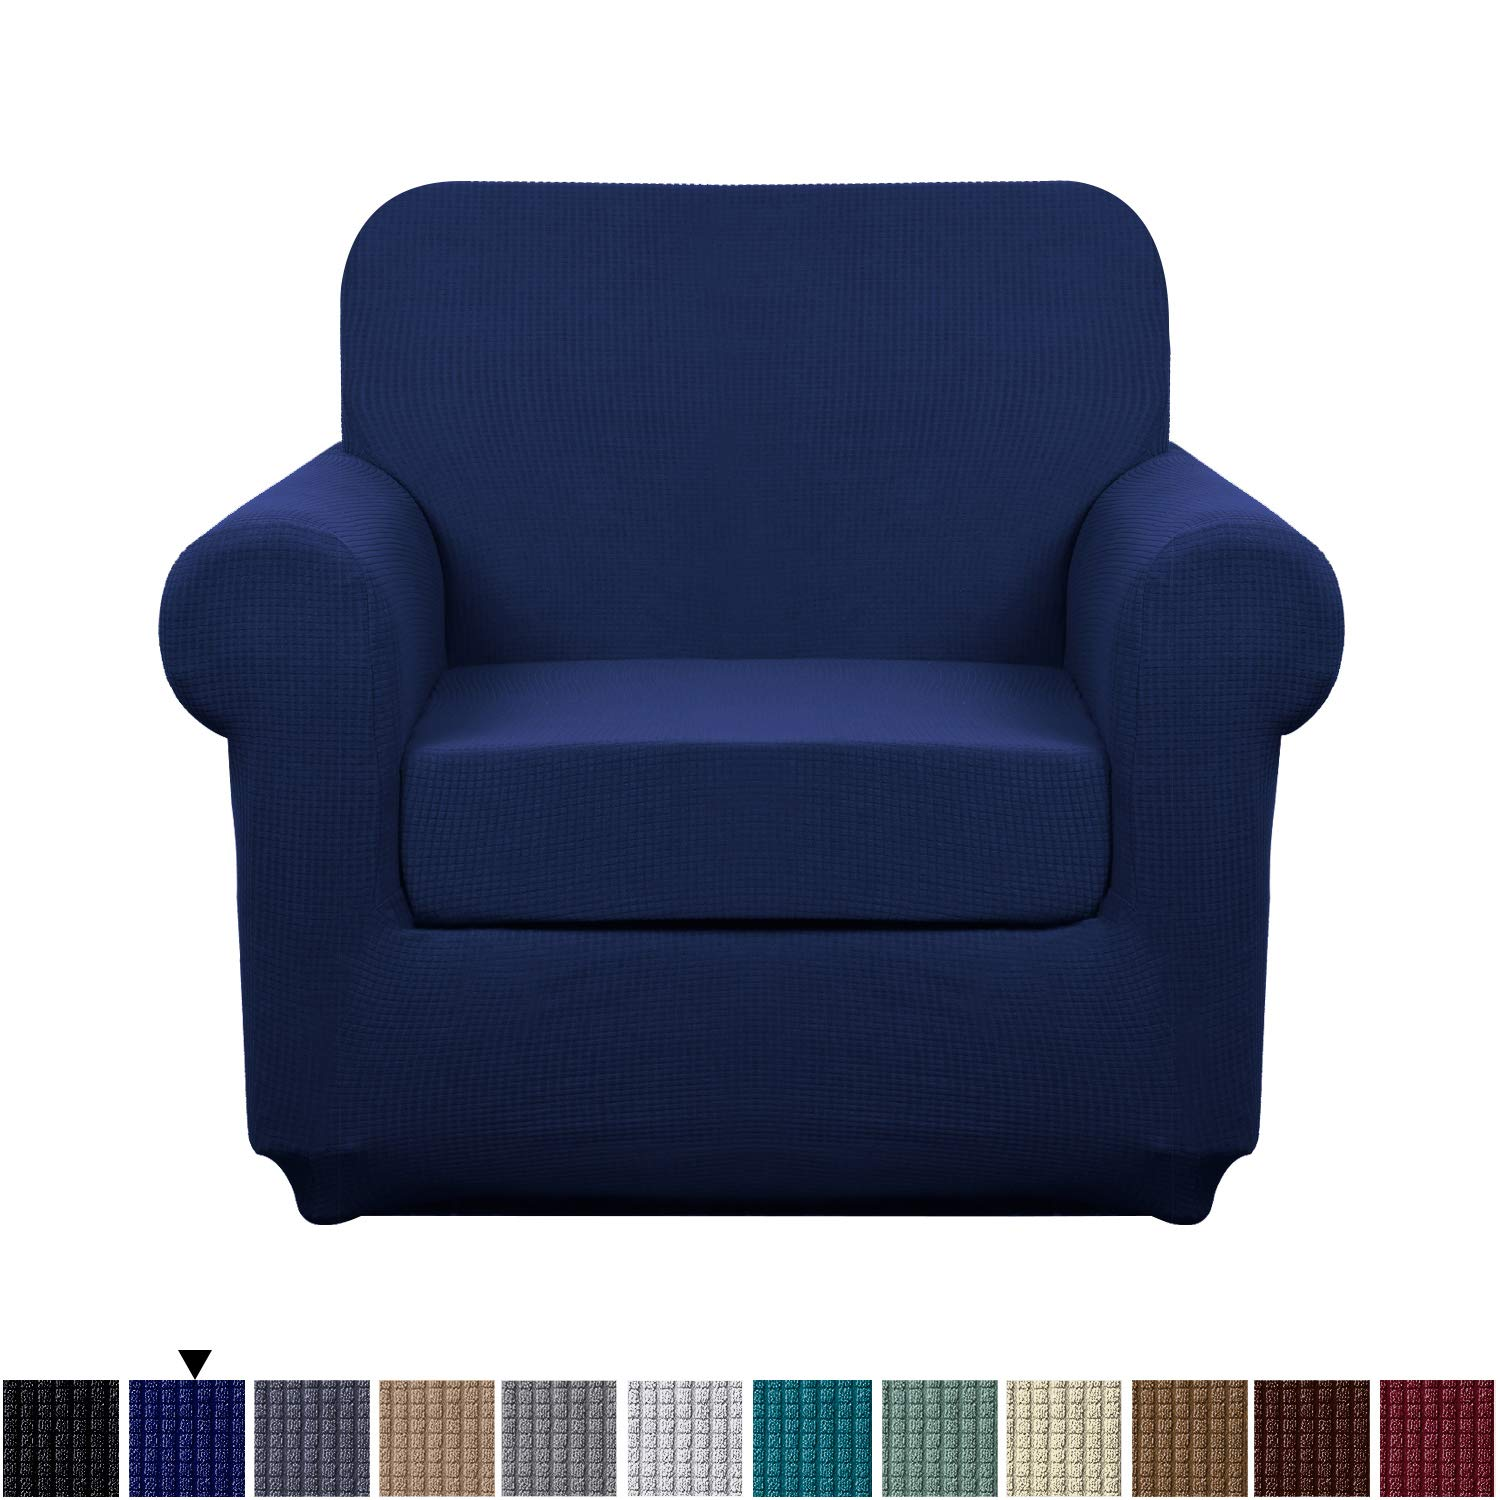 Granbest Stretch Sofa Slipcovers 3 Cushion Couch Covers Water-Repellent Pet Furniture Covers Dog Couch Protectors (Navy Blue, Small-2 Pieces)